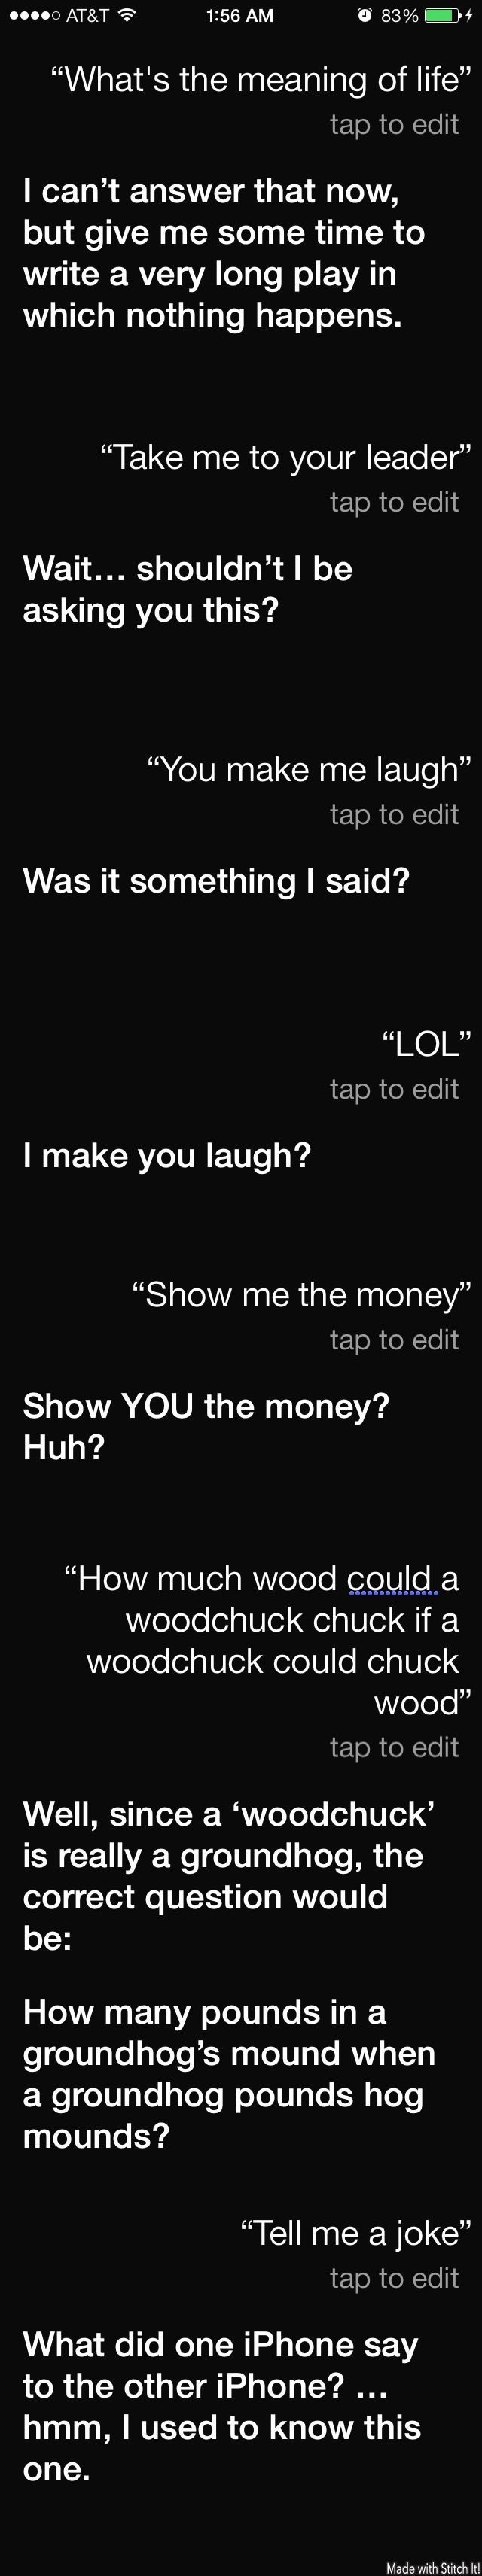 Asking Siri some funny questions....